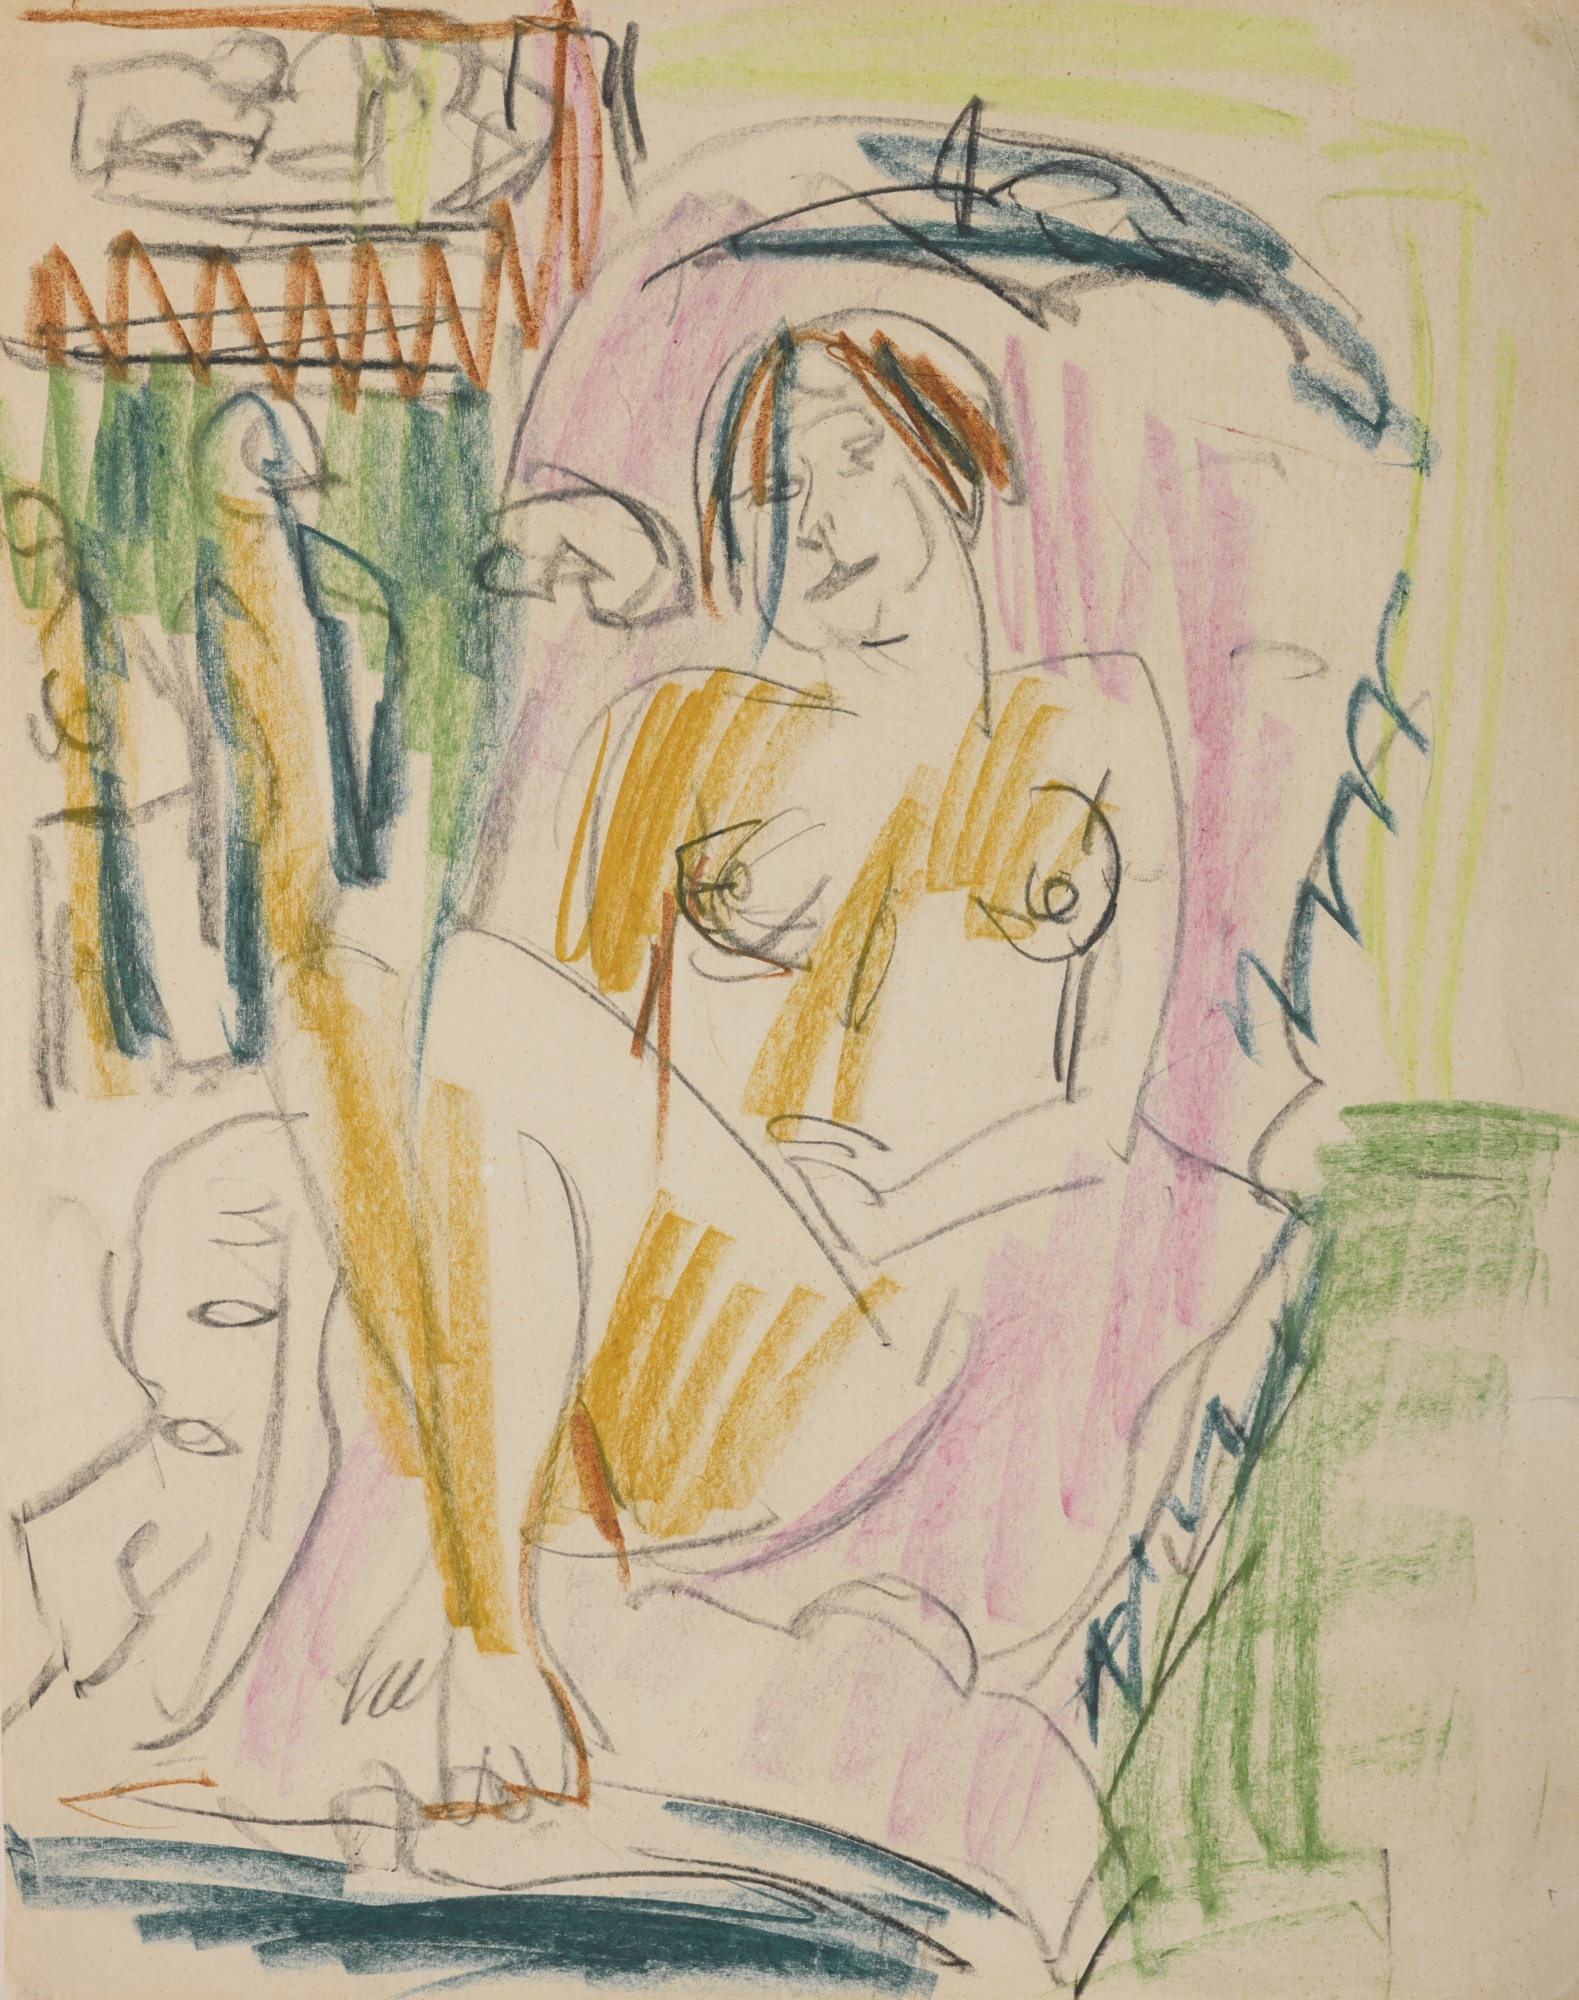 Ernst Ludwig Kirchner-Weiblicher Akt Im Sessel (Im Liegestuhl) (Female Nude In Armchair (On A Reclining Chair)) - Recto Akt Im Waschzuber (Nude In A Bath Tub) - Verso-1922